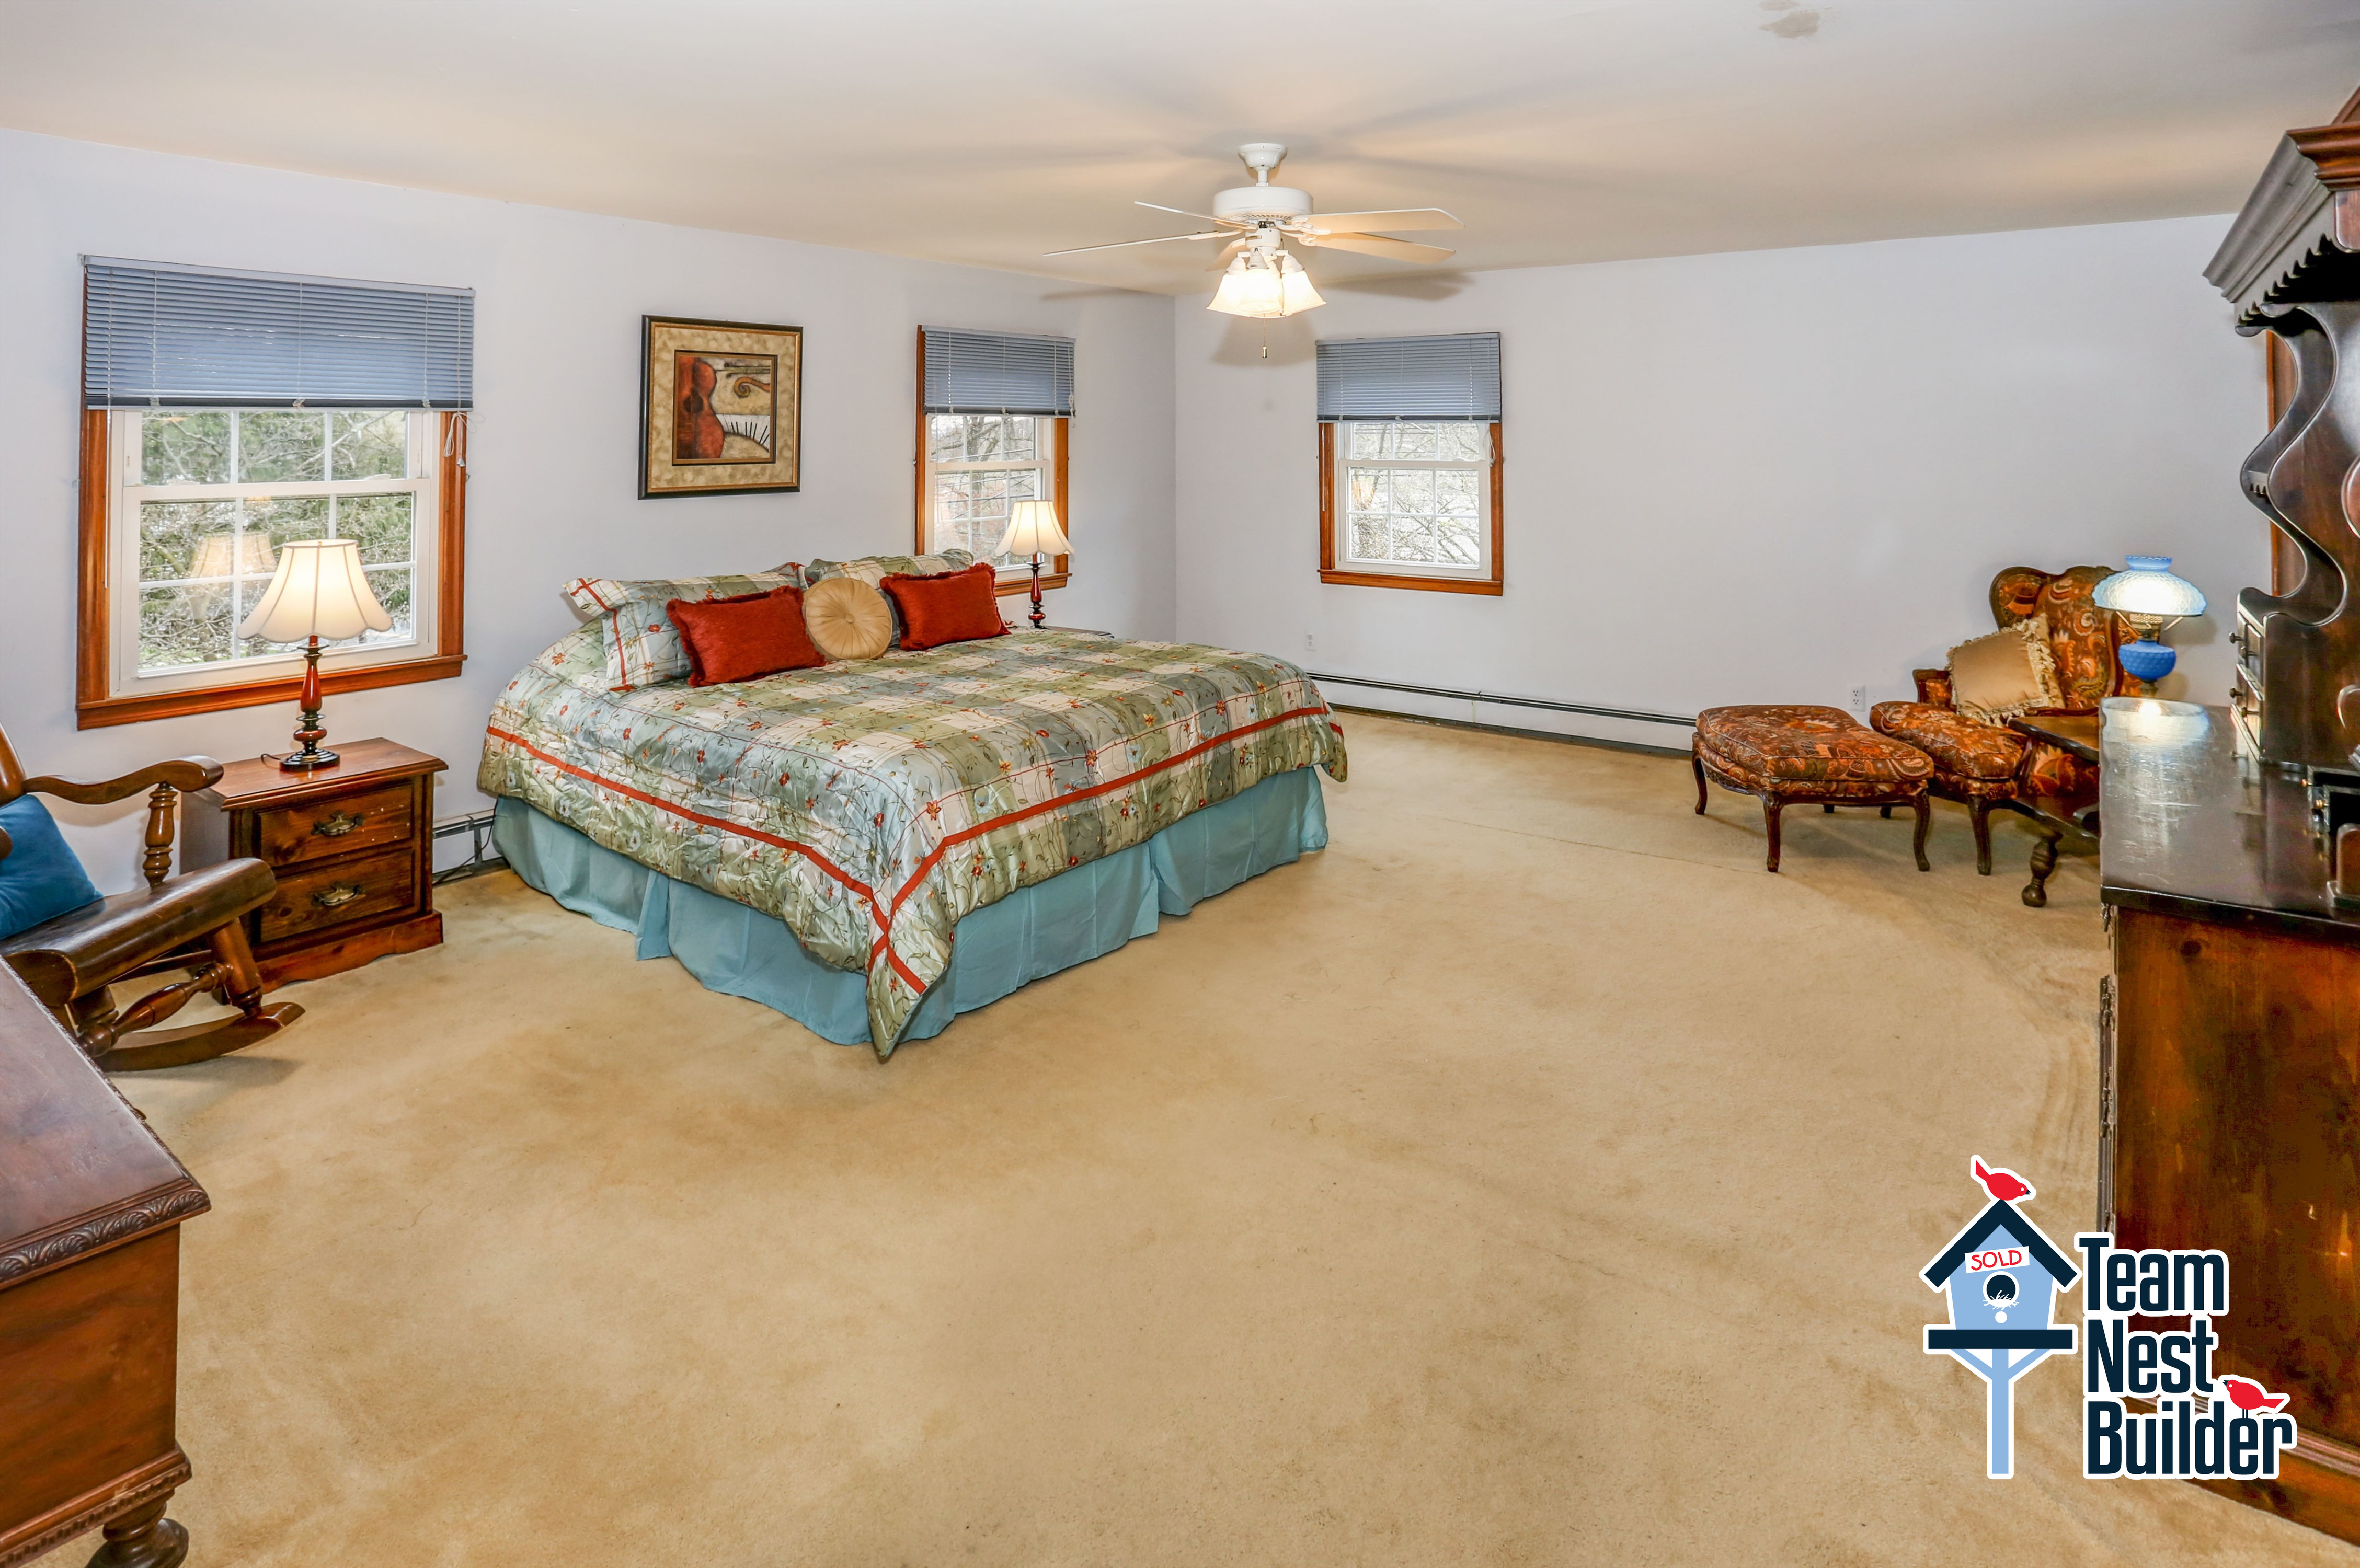 Huge master bedroom with alcove sitting area, private full bathroom and walk-in closet!